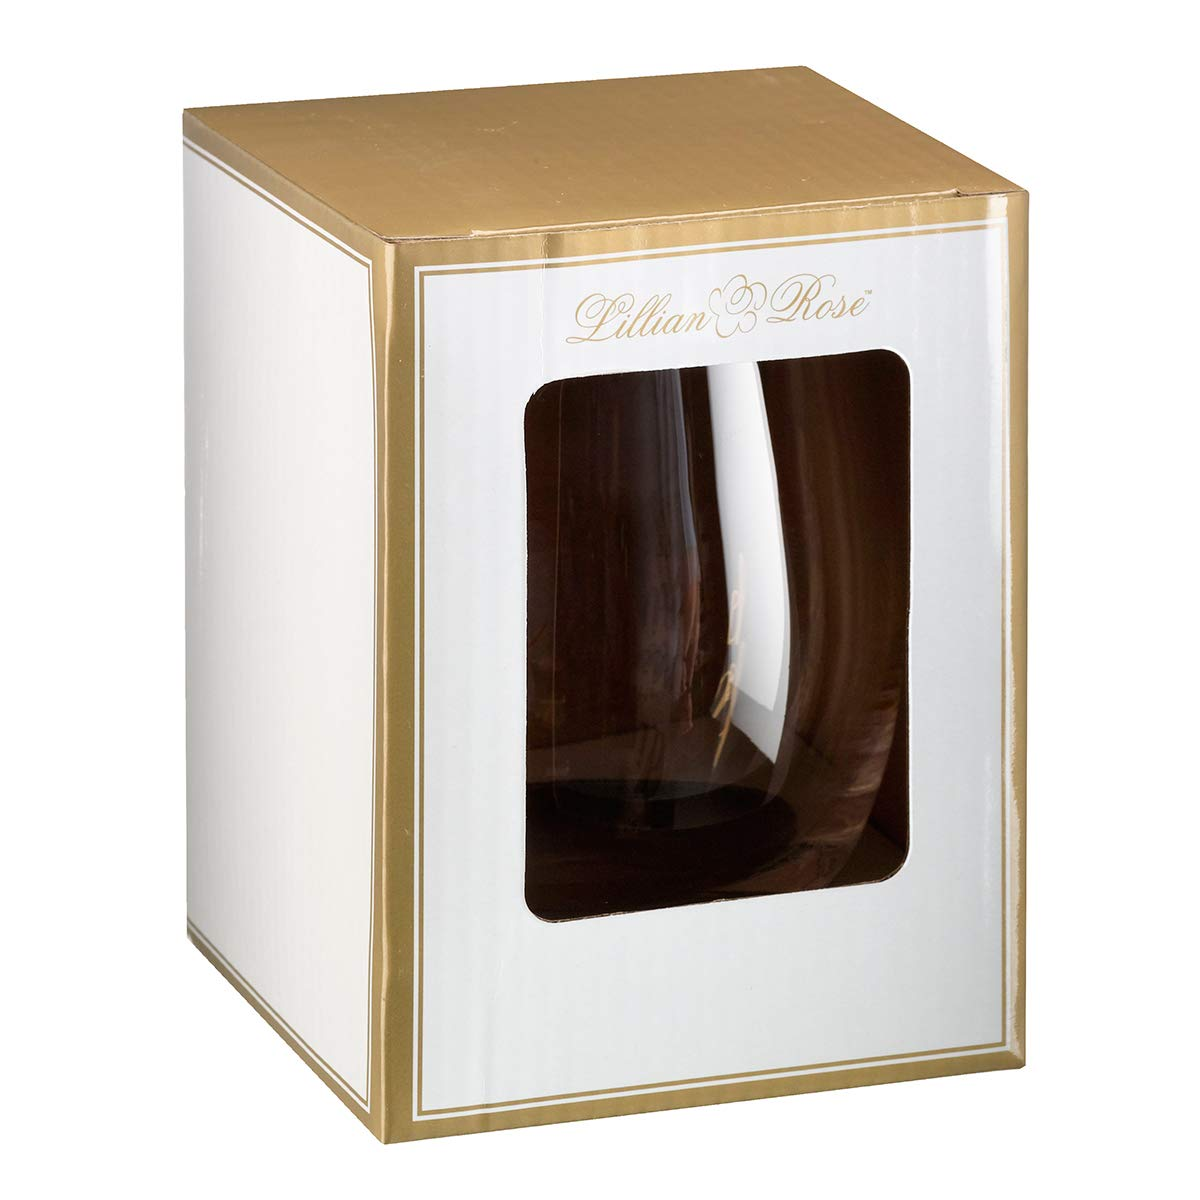 Lillian Rose G115 MH Gold Maid of Honor Stemless Wine Glass, Height 4.75 inches by Lillian Rose (Image #3)